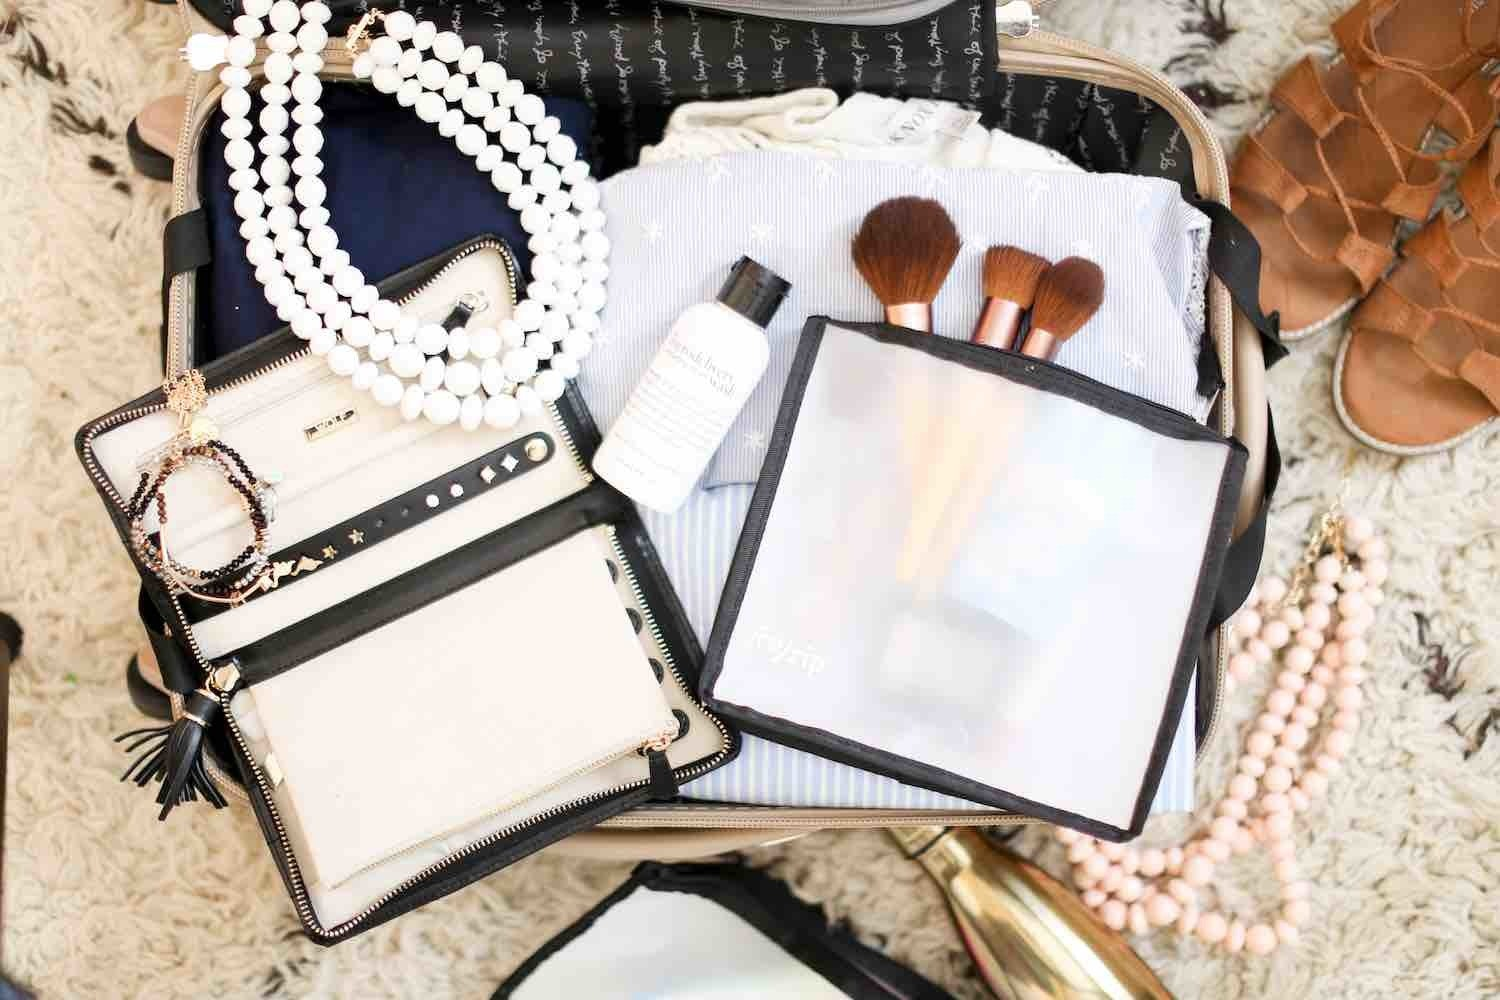 Stress-Relieving Packing Tips for All of Your Summer Travels